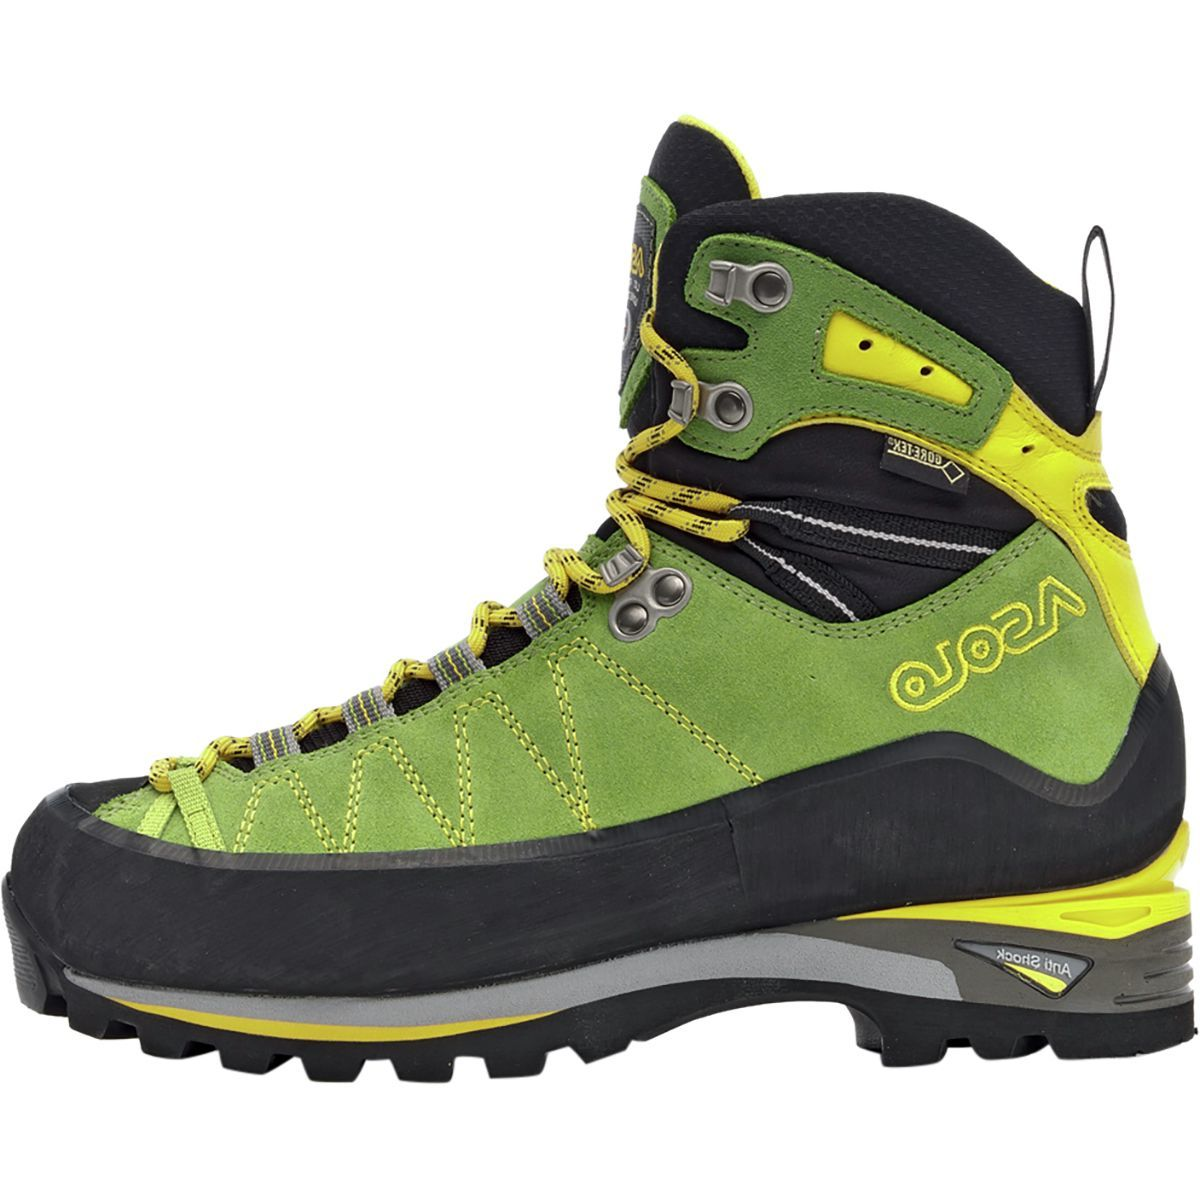 Asolo Elbrus GV Mountaineering Boot - Women's